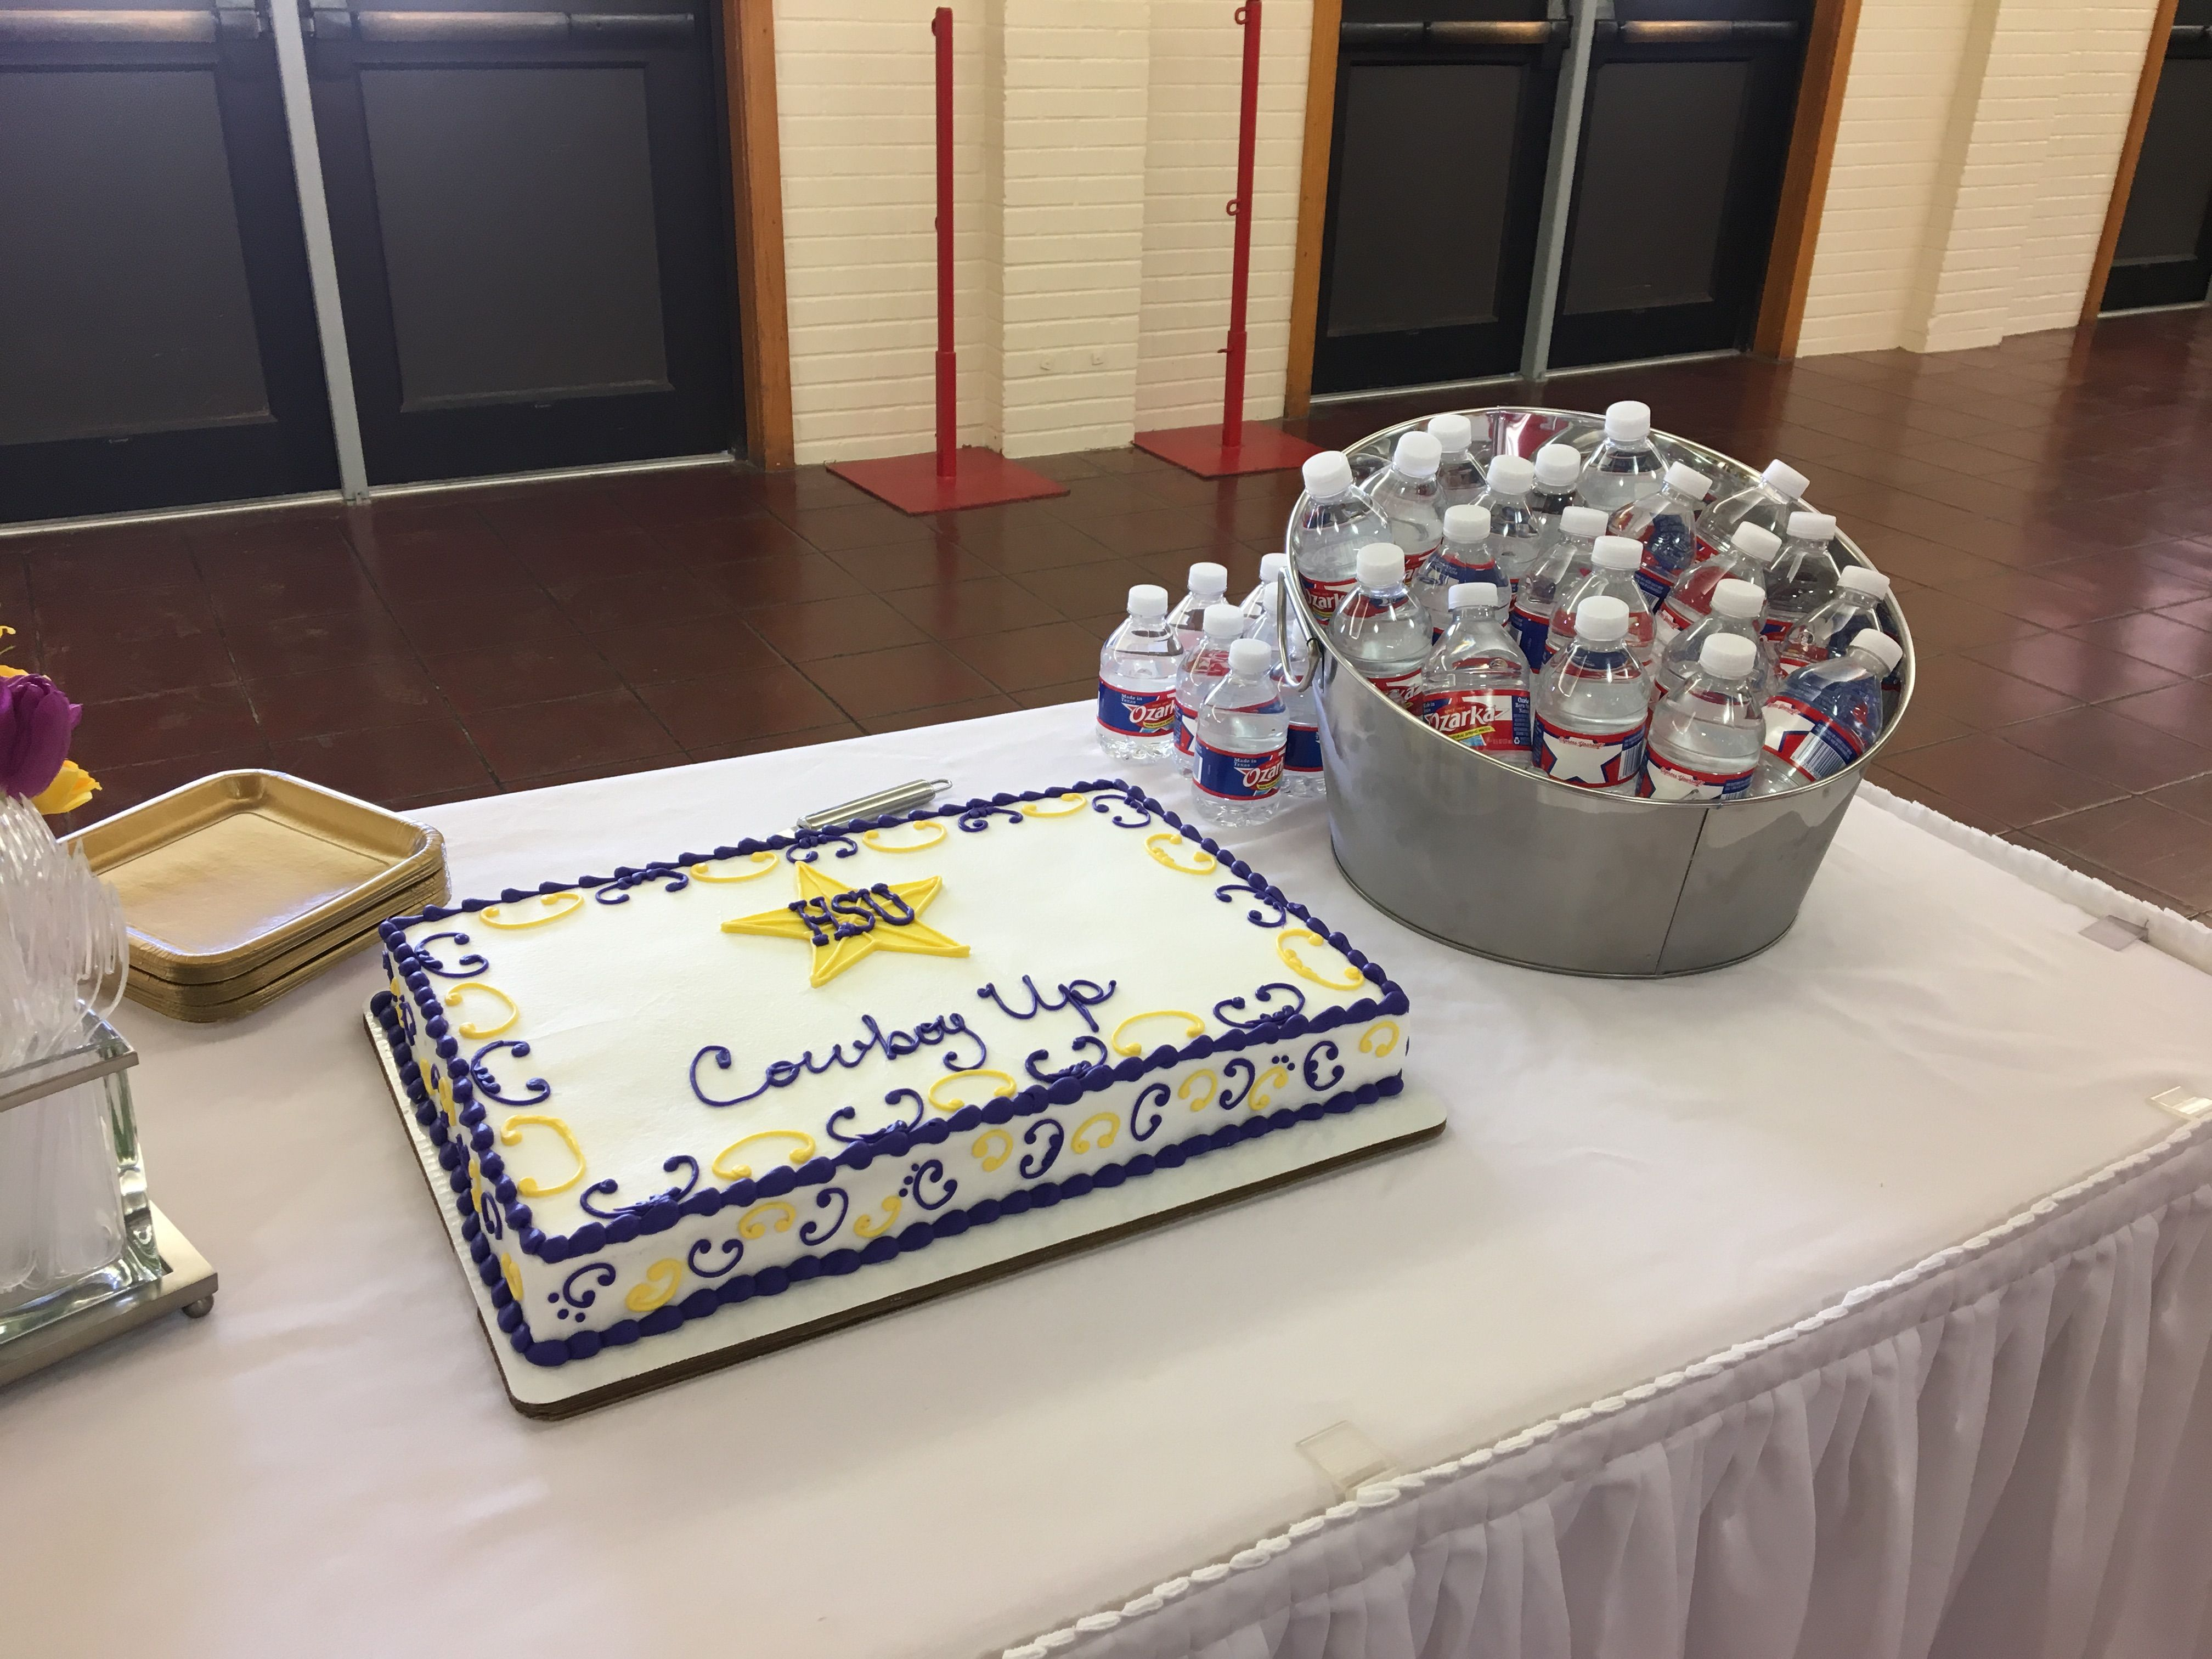 Hardin Simmons Signing Day And Cake Cake Food Hardin Simmons